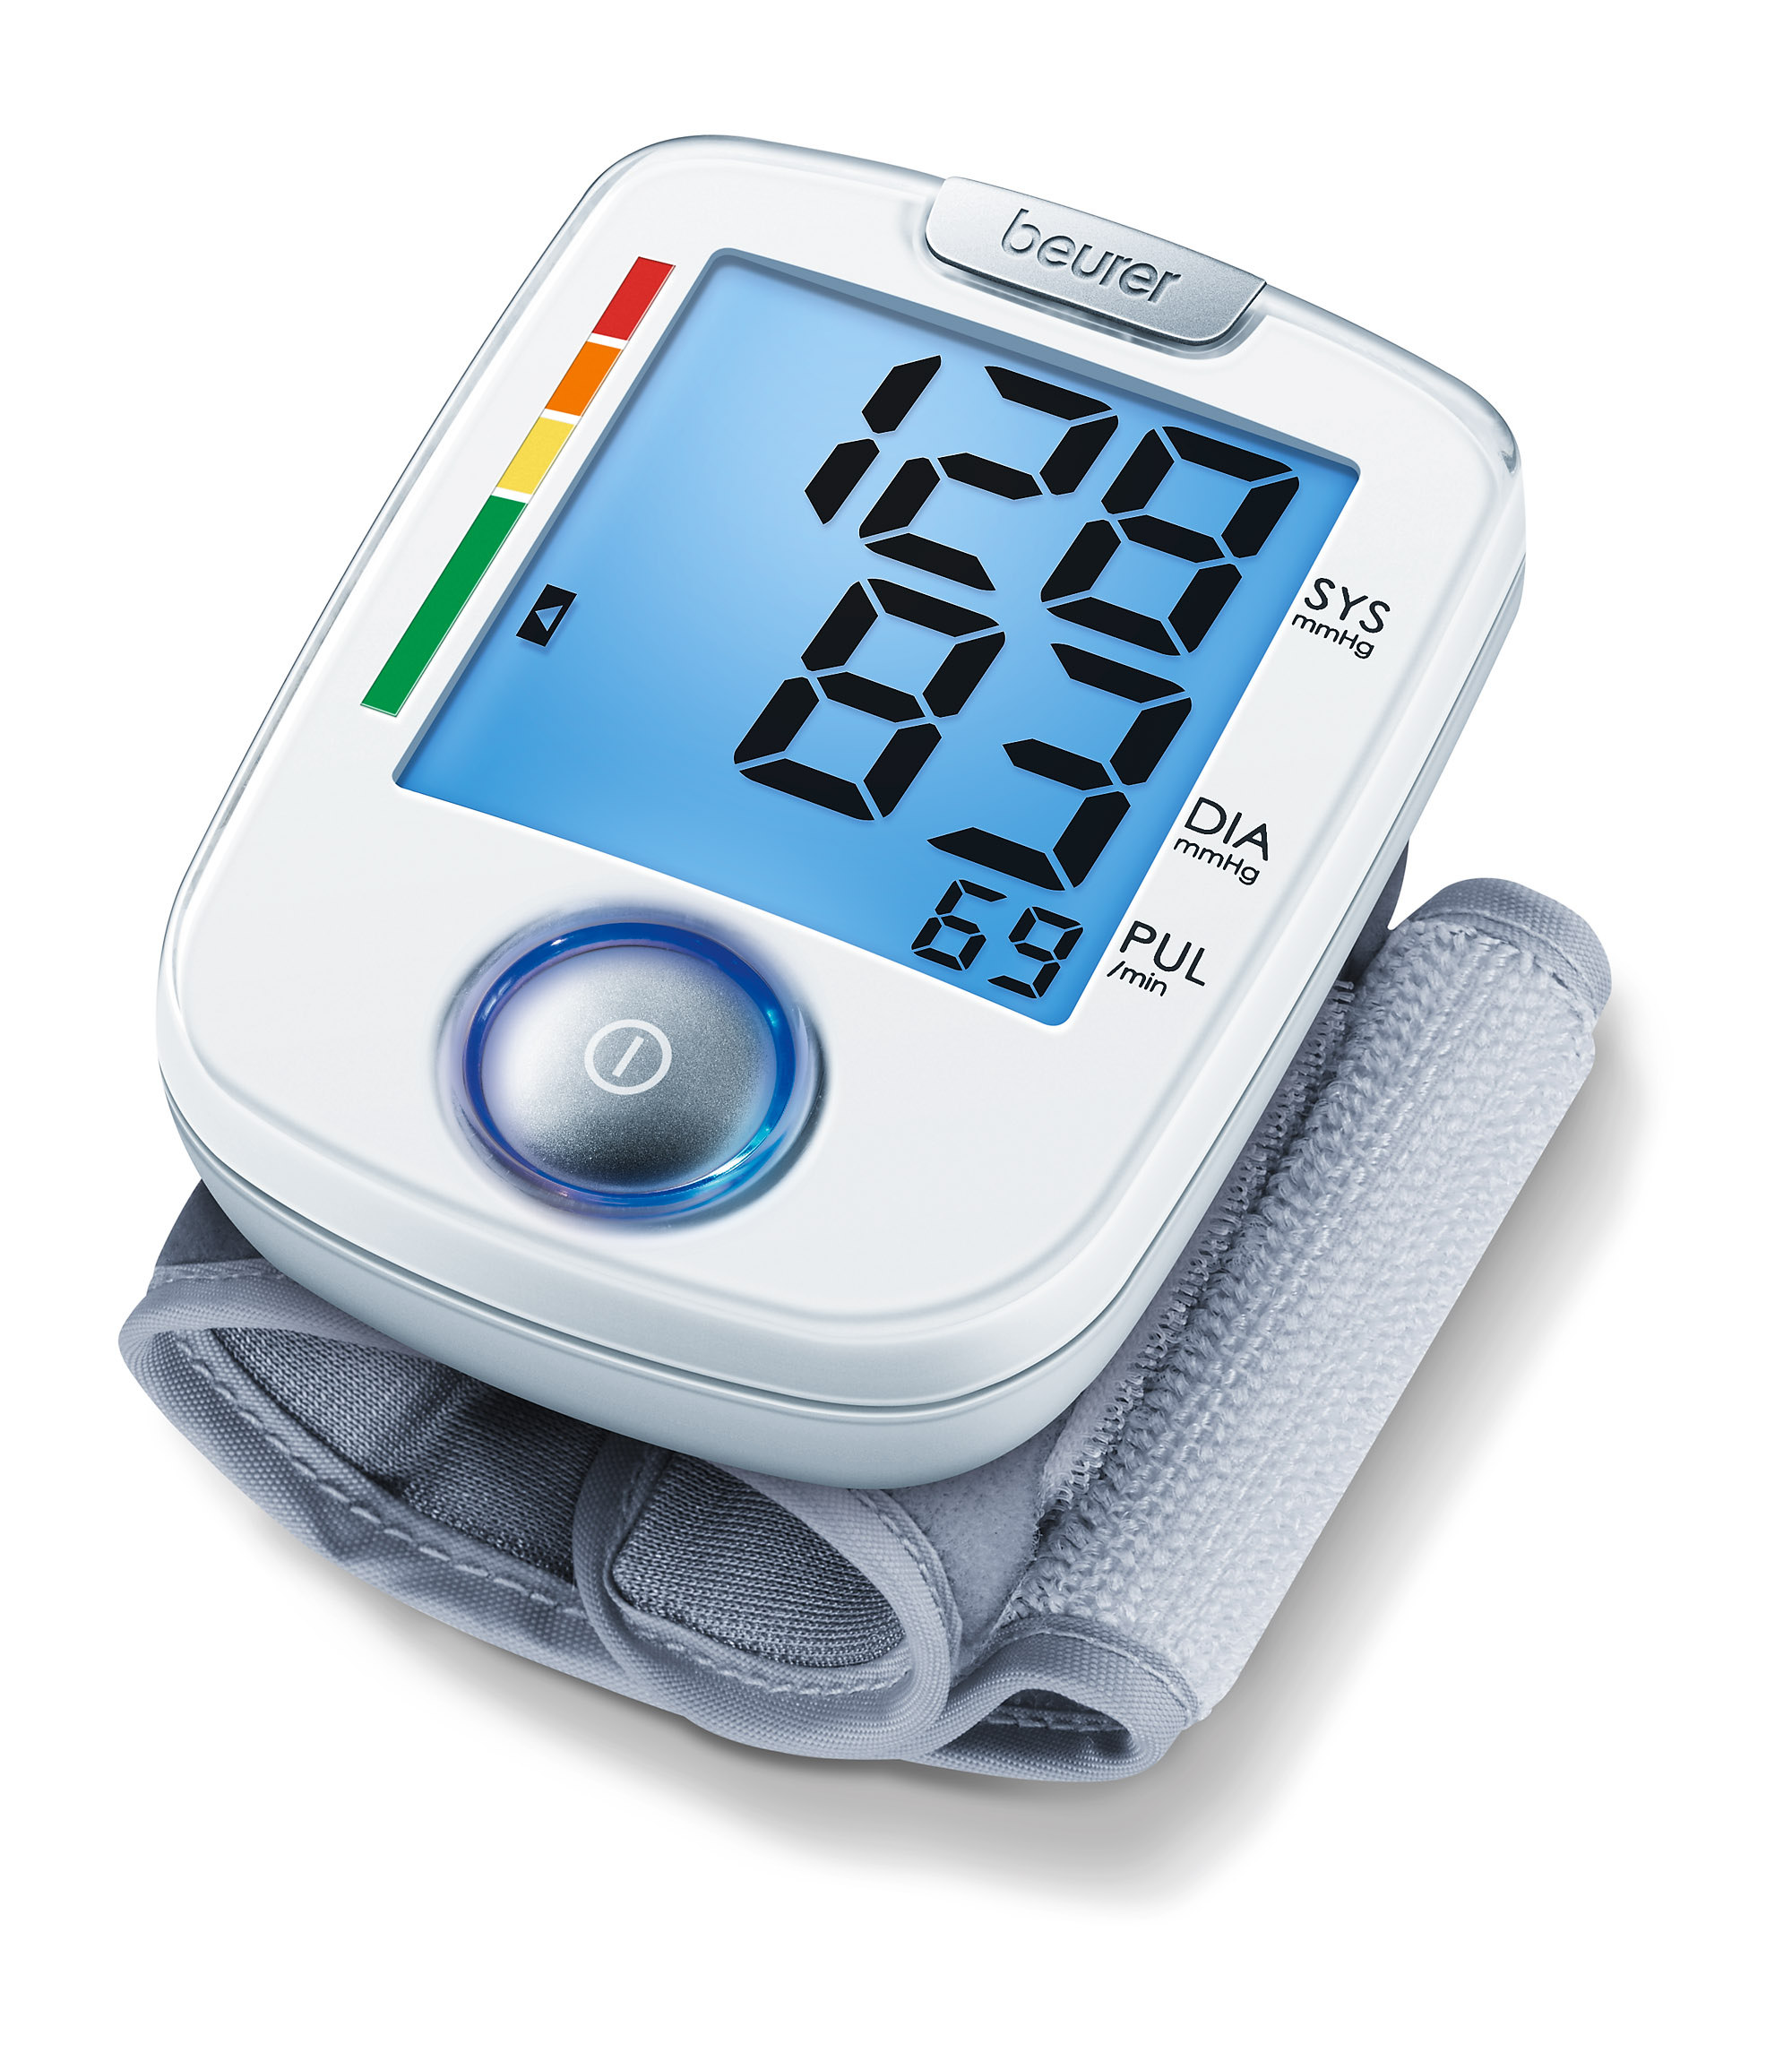 Blood pressure monitor: Type BC 44